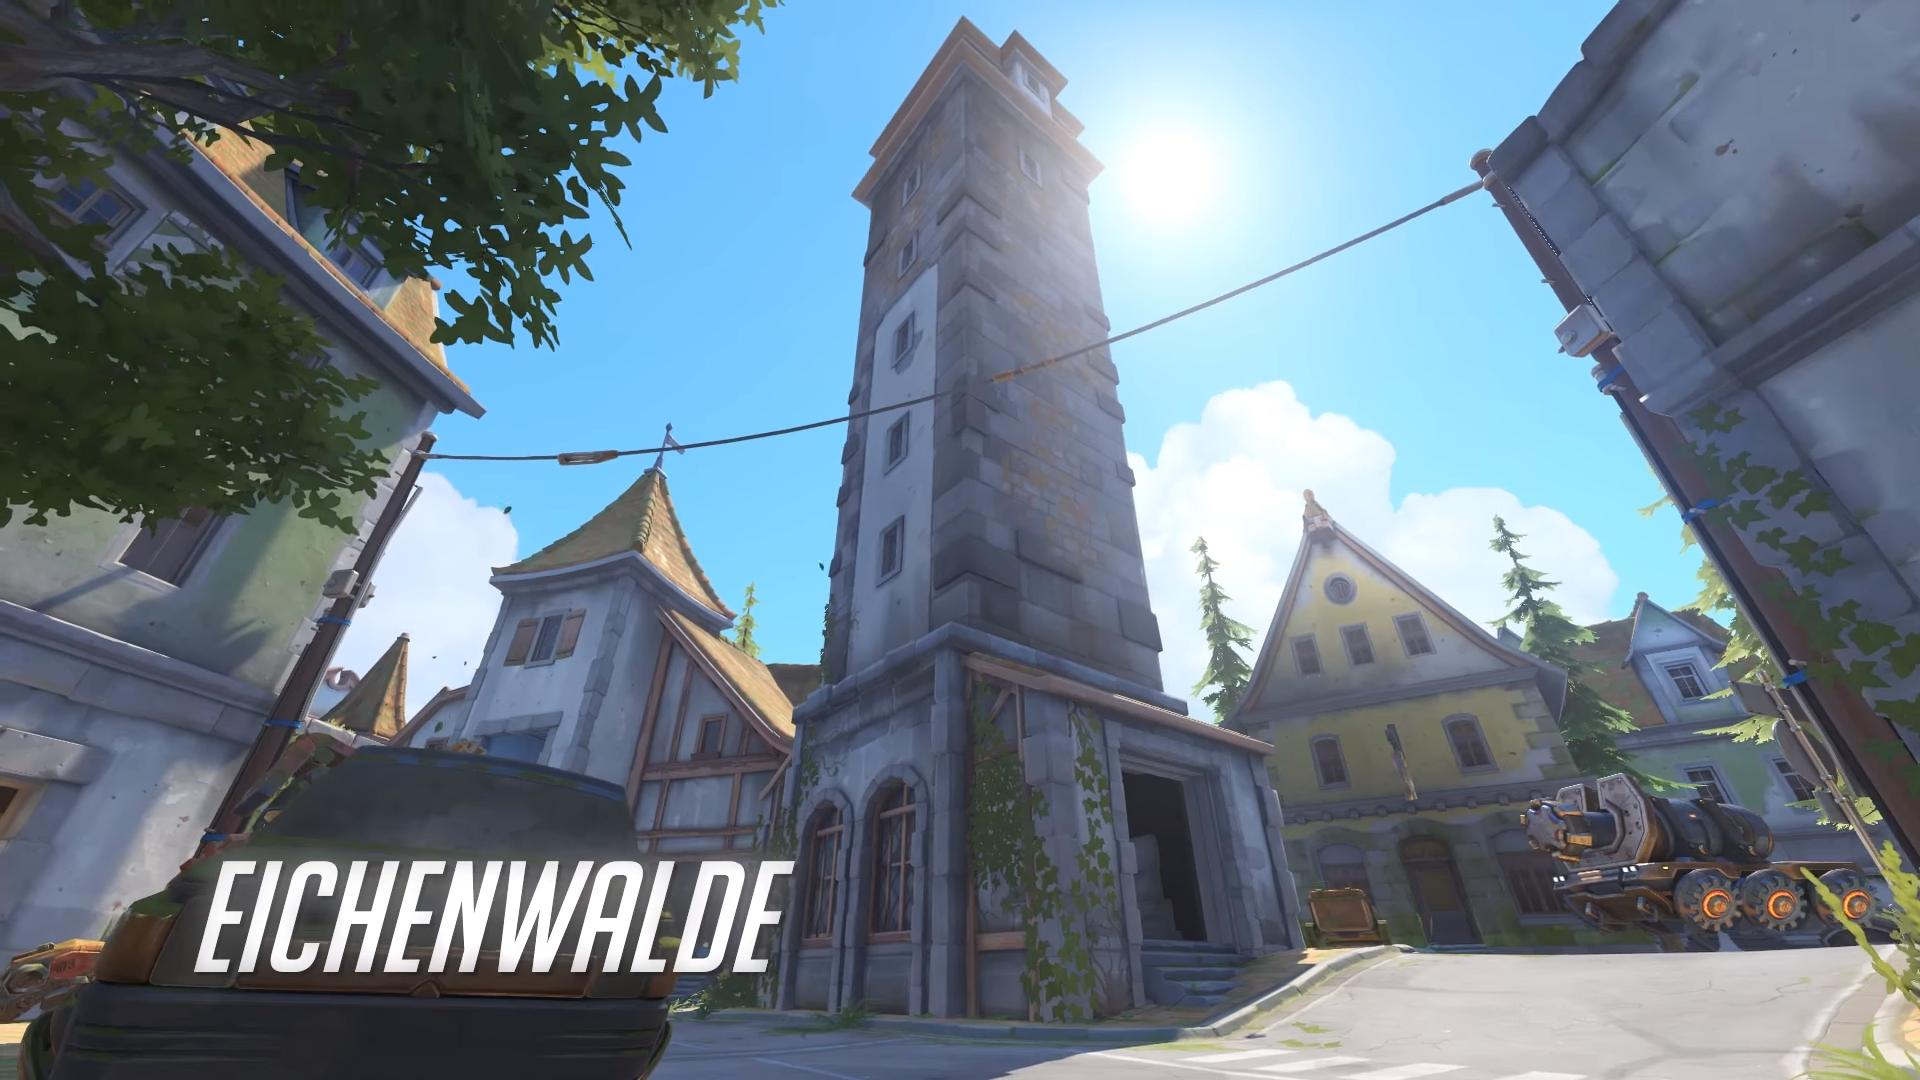 Overwatch's New Map, Eichenwalde, coming in September